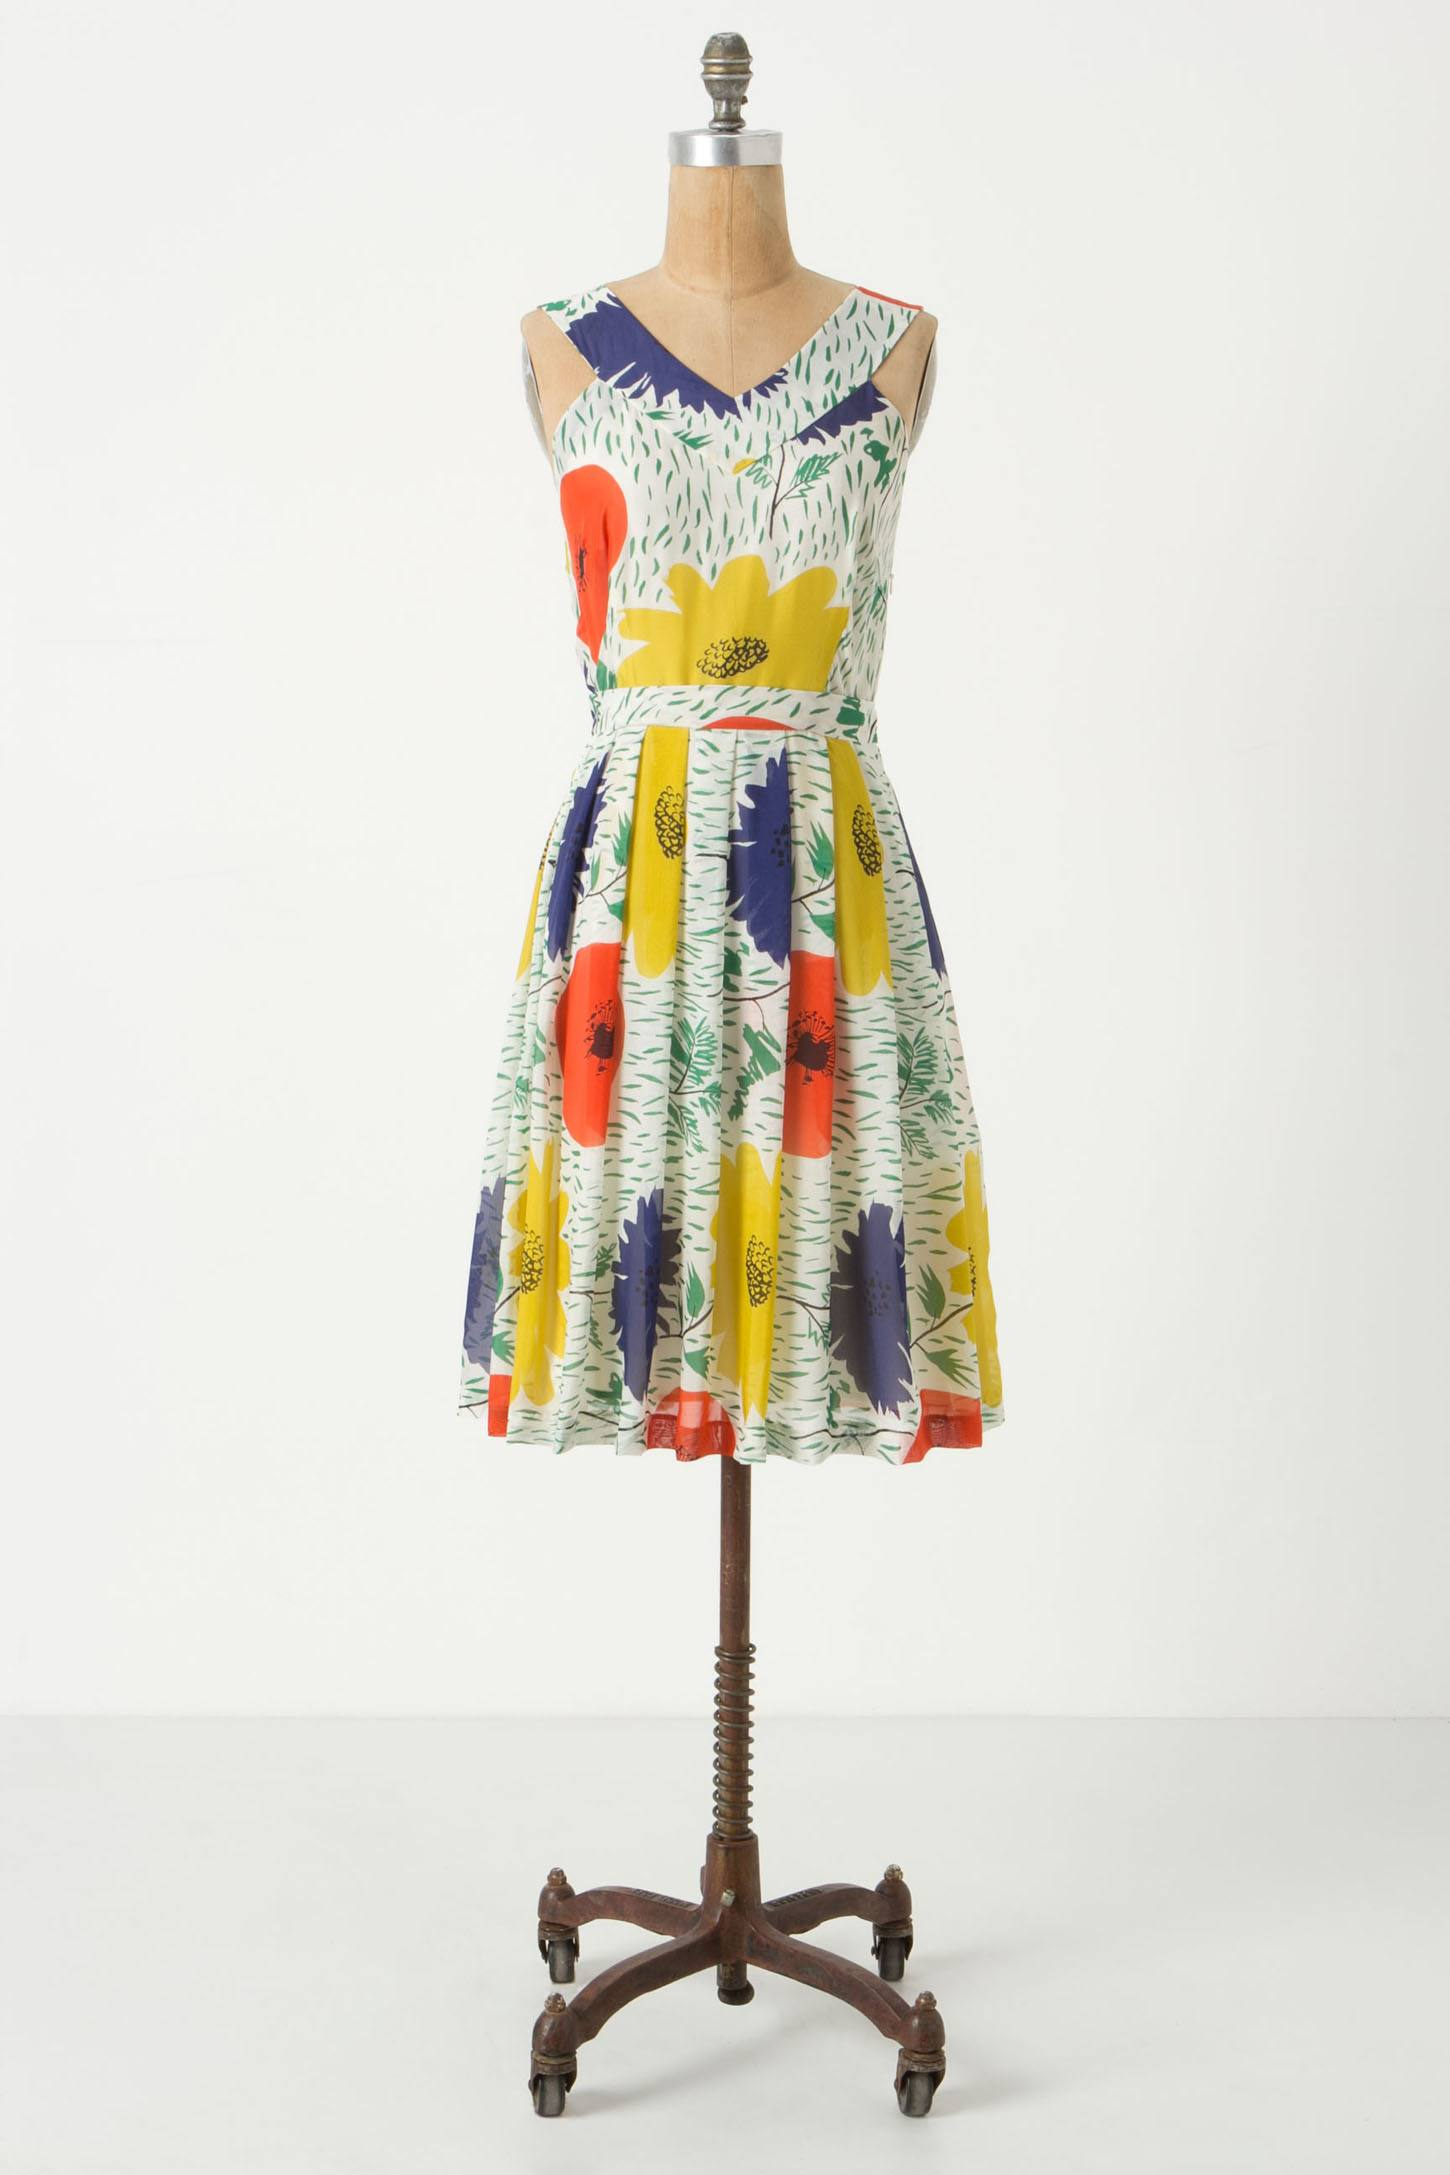 http://images.anthropologie.com/is/image/Anthropologie/24560716_079_b?$redesign-zoom-5x$